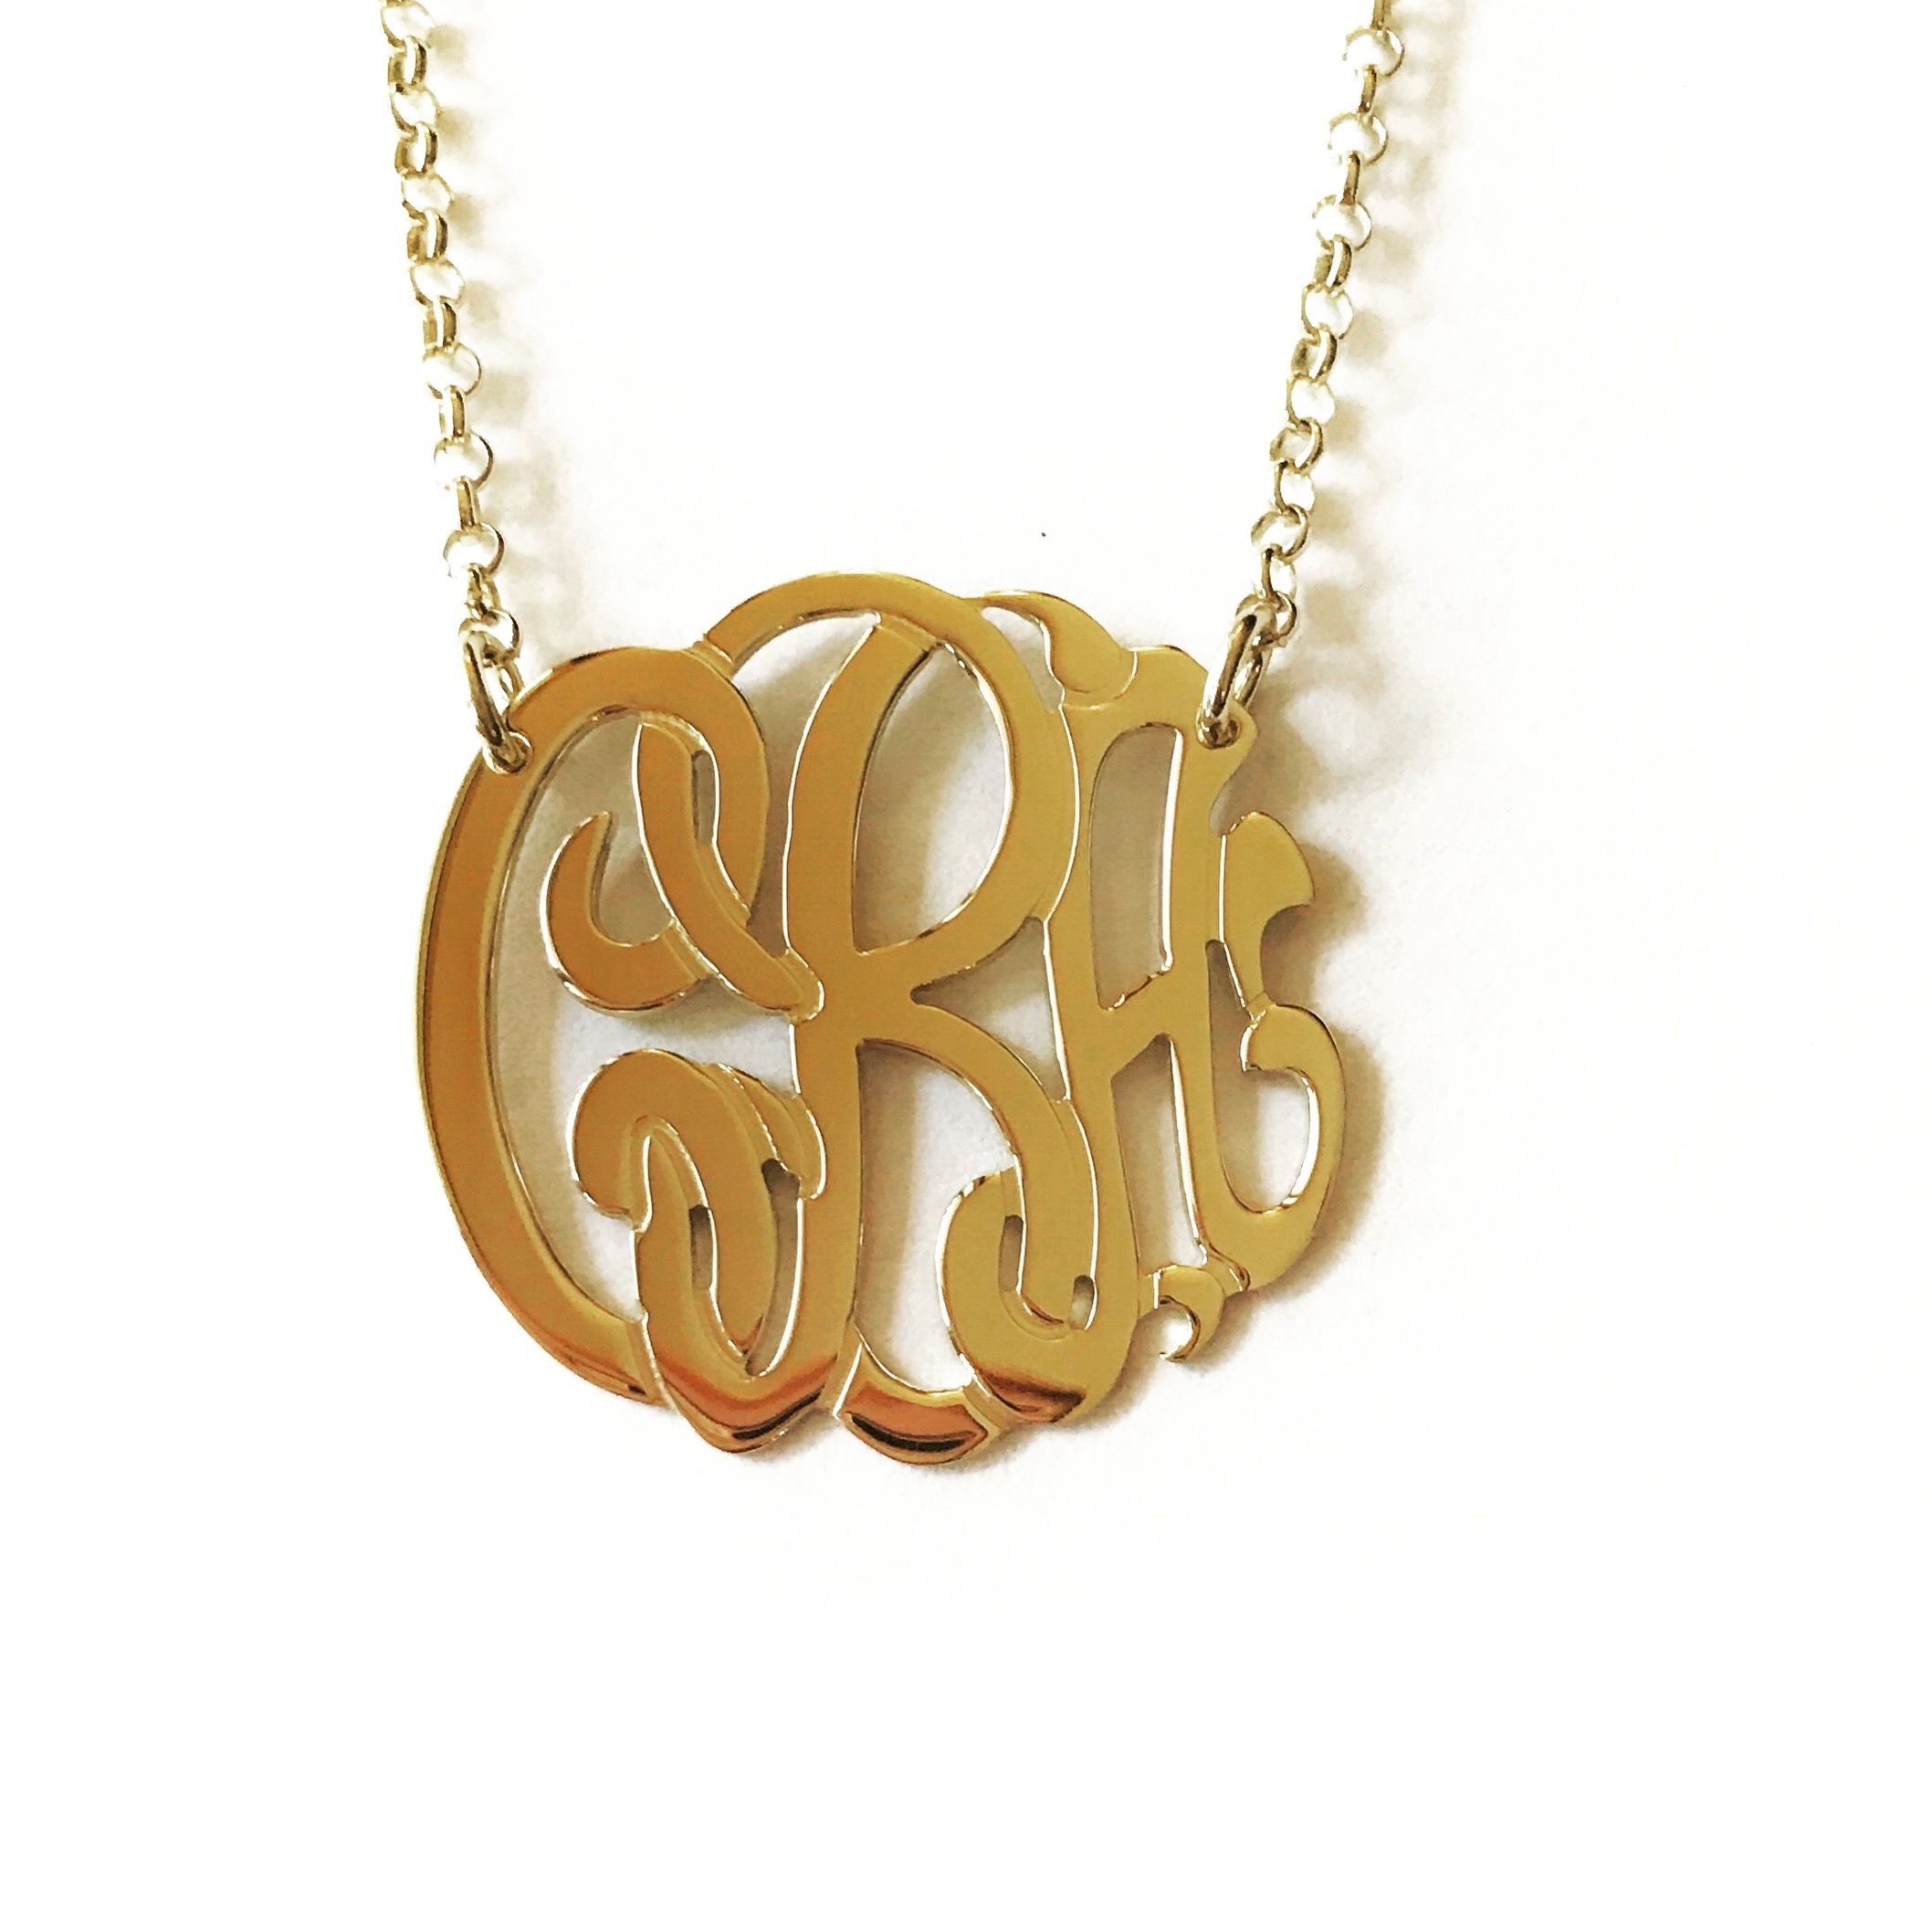 14k gold monogram 3 initial necklace pinterest initial necklaces 14k gold monogram 3 initial necklace aloadofball Image collections